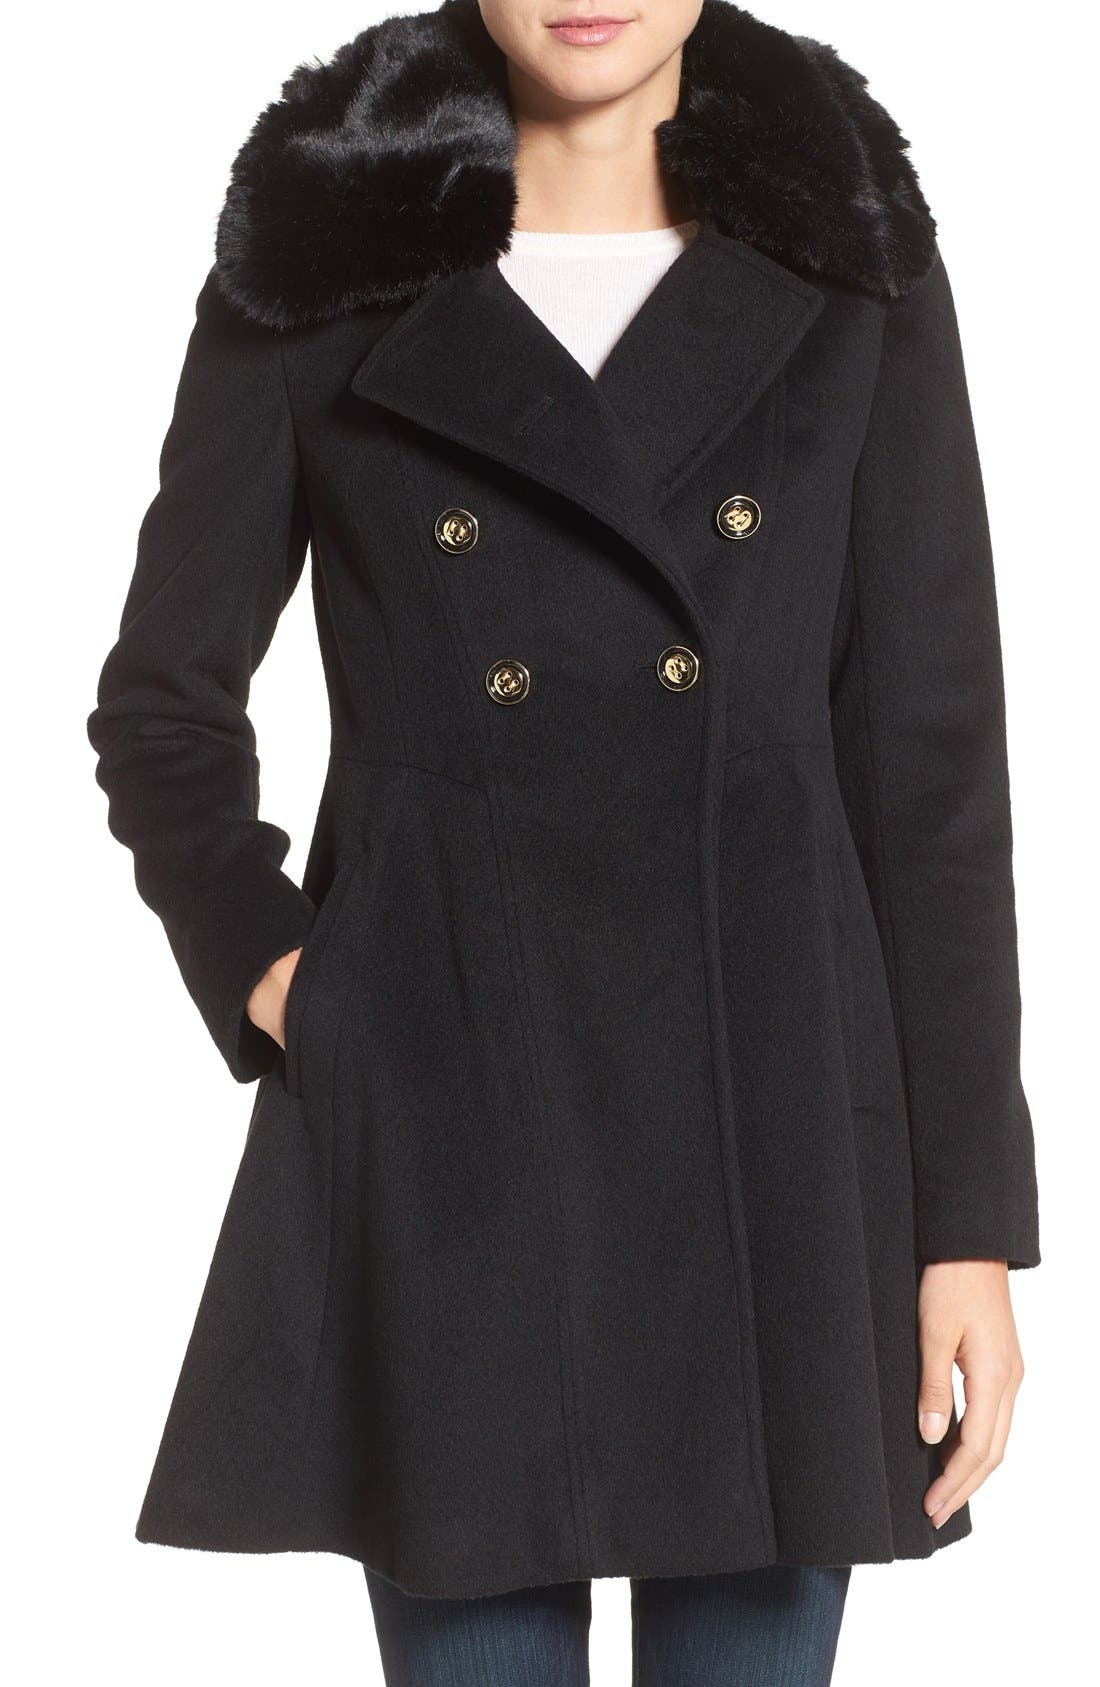 Double Breasted Coat with Faux Fur Collar,                             Main thumbnail 1, color,                             Black